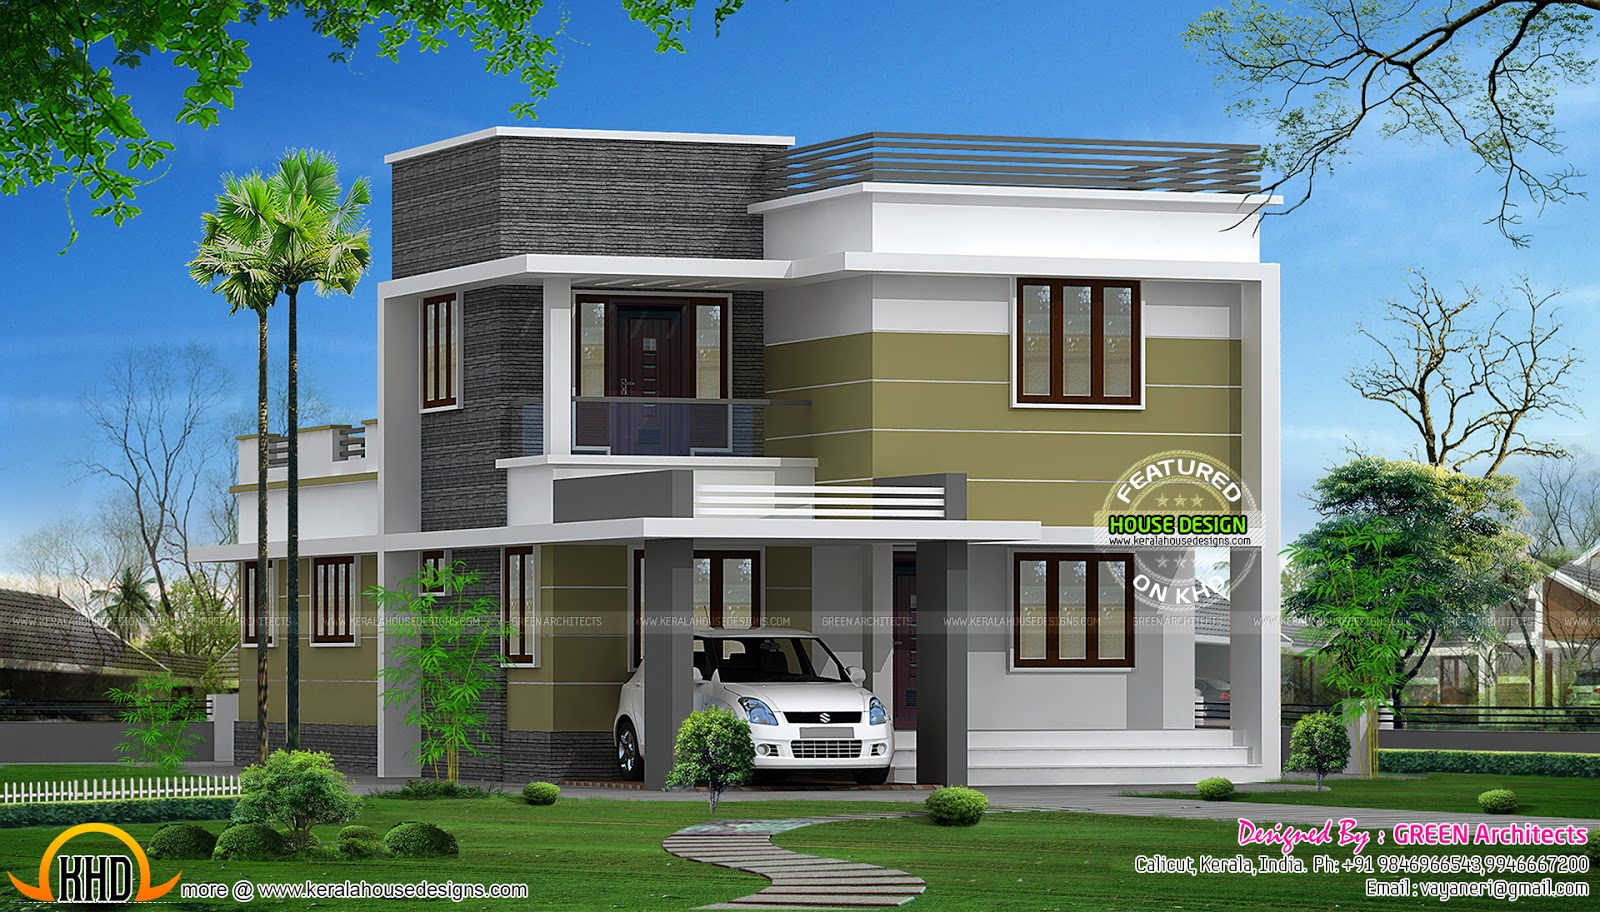 186 Sq M Small Double Storied House In Kerala Kerala